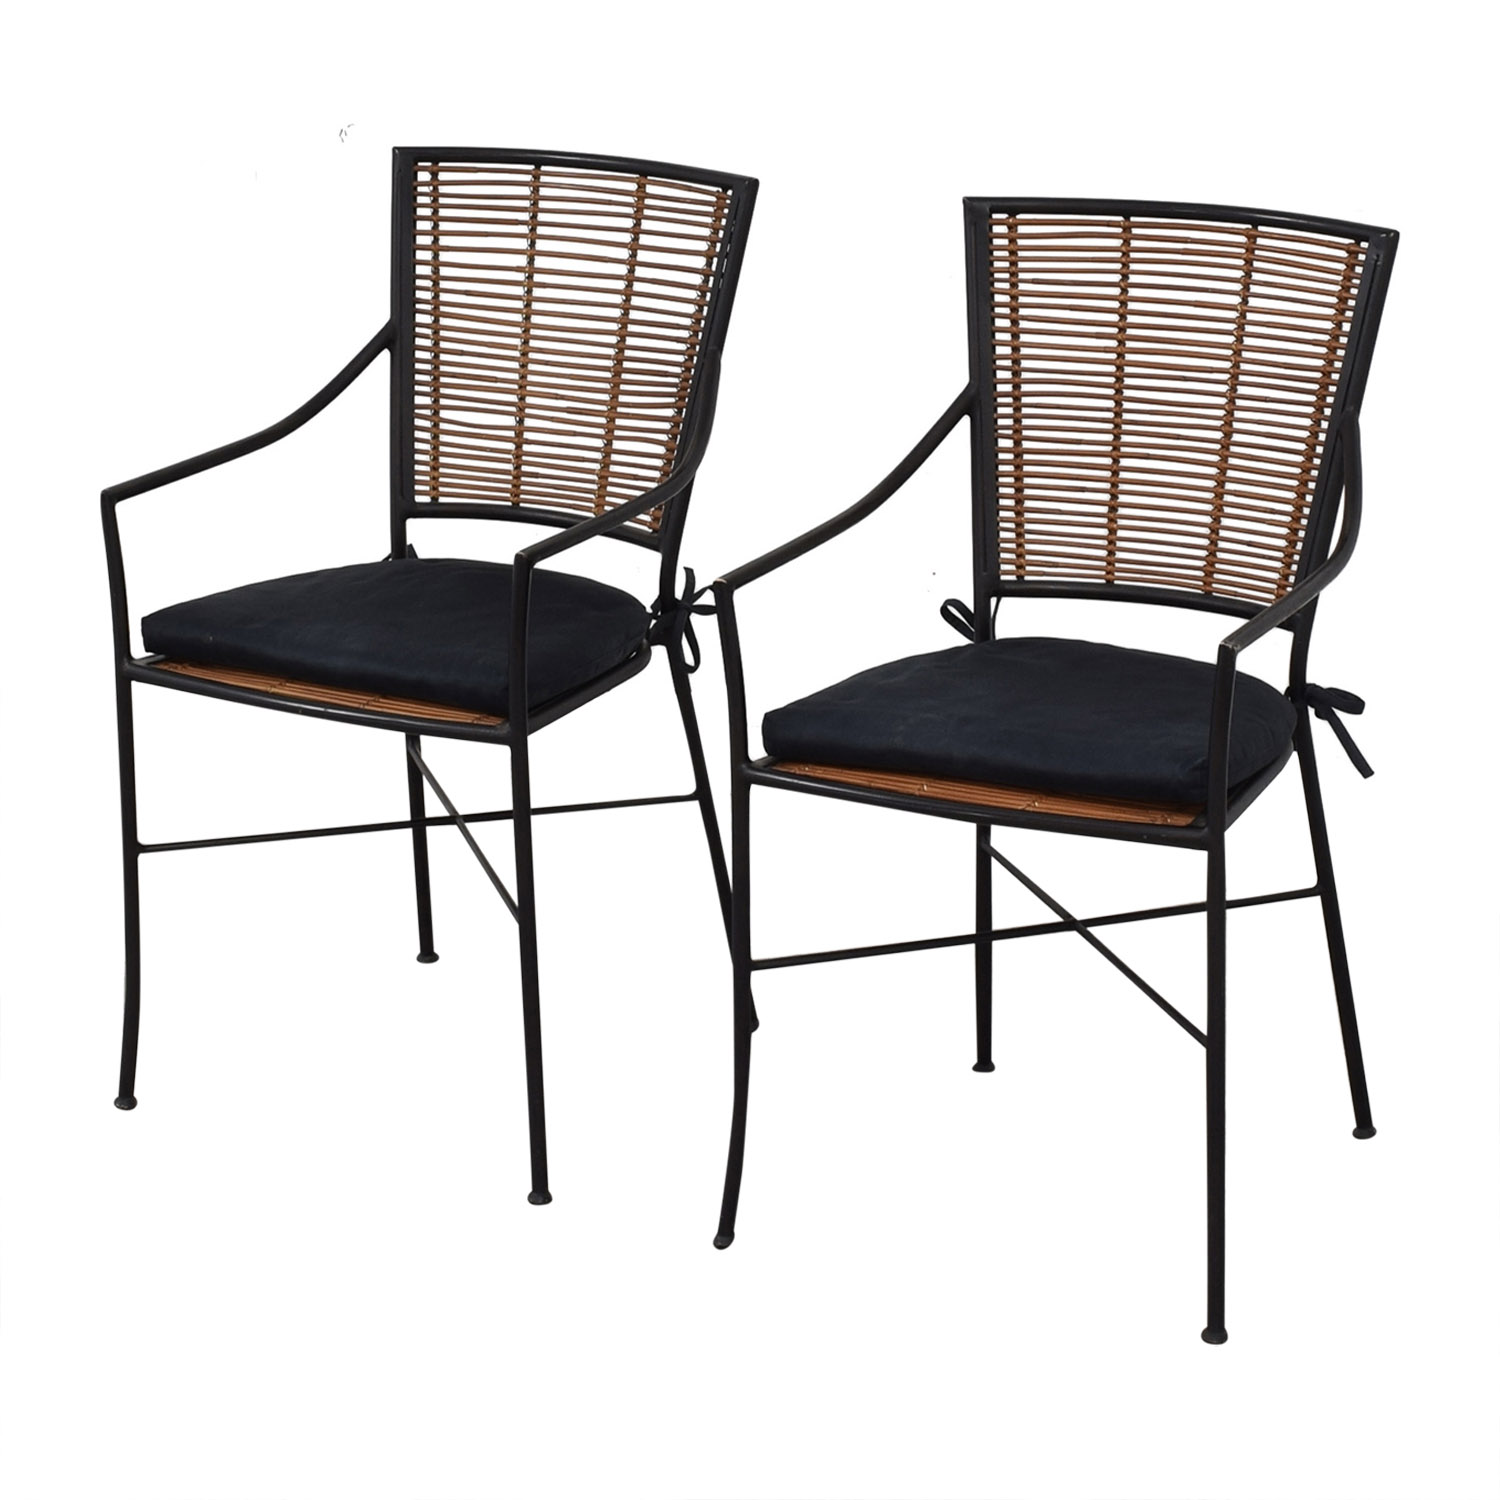 buy Crate & Barrel Dining Chairs Crate & Barrel Chairs